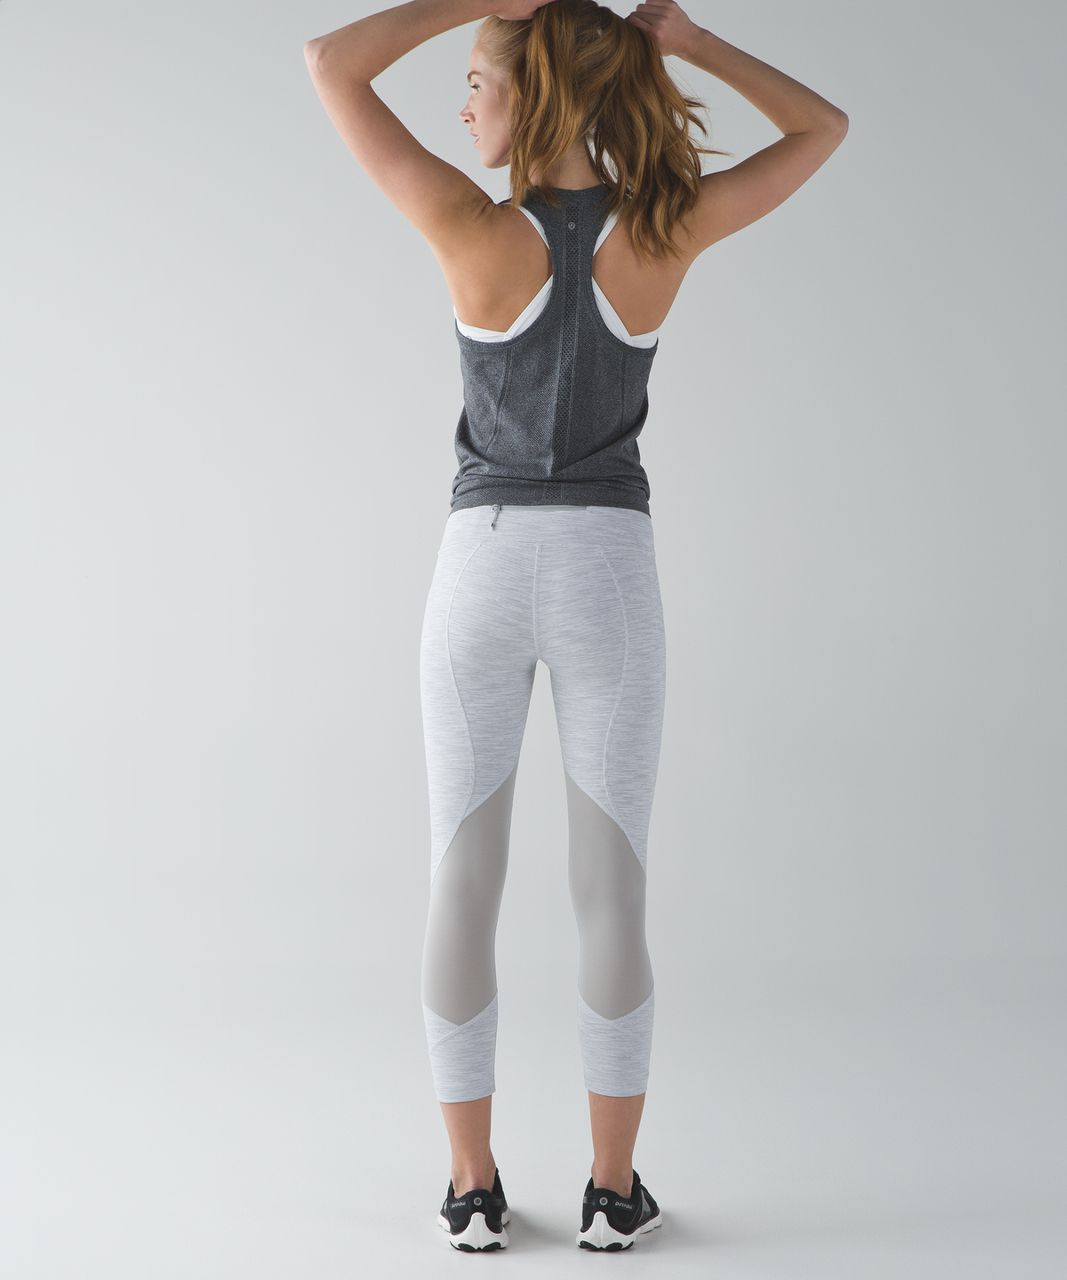 Lululemon Pace Rival Crop - Wee Are From Space Nimbus Battleship / Seal Grey